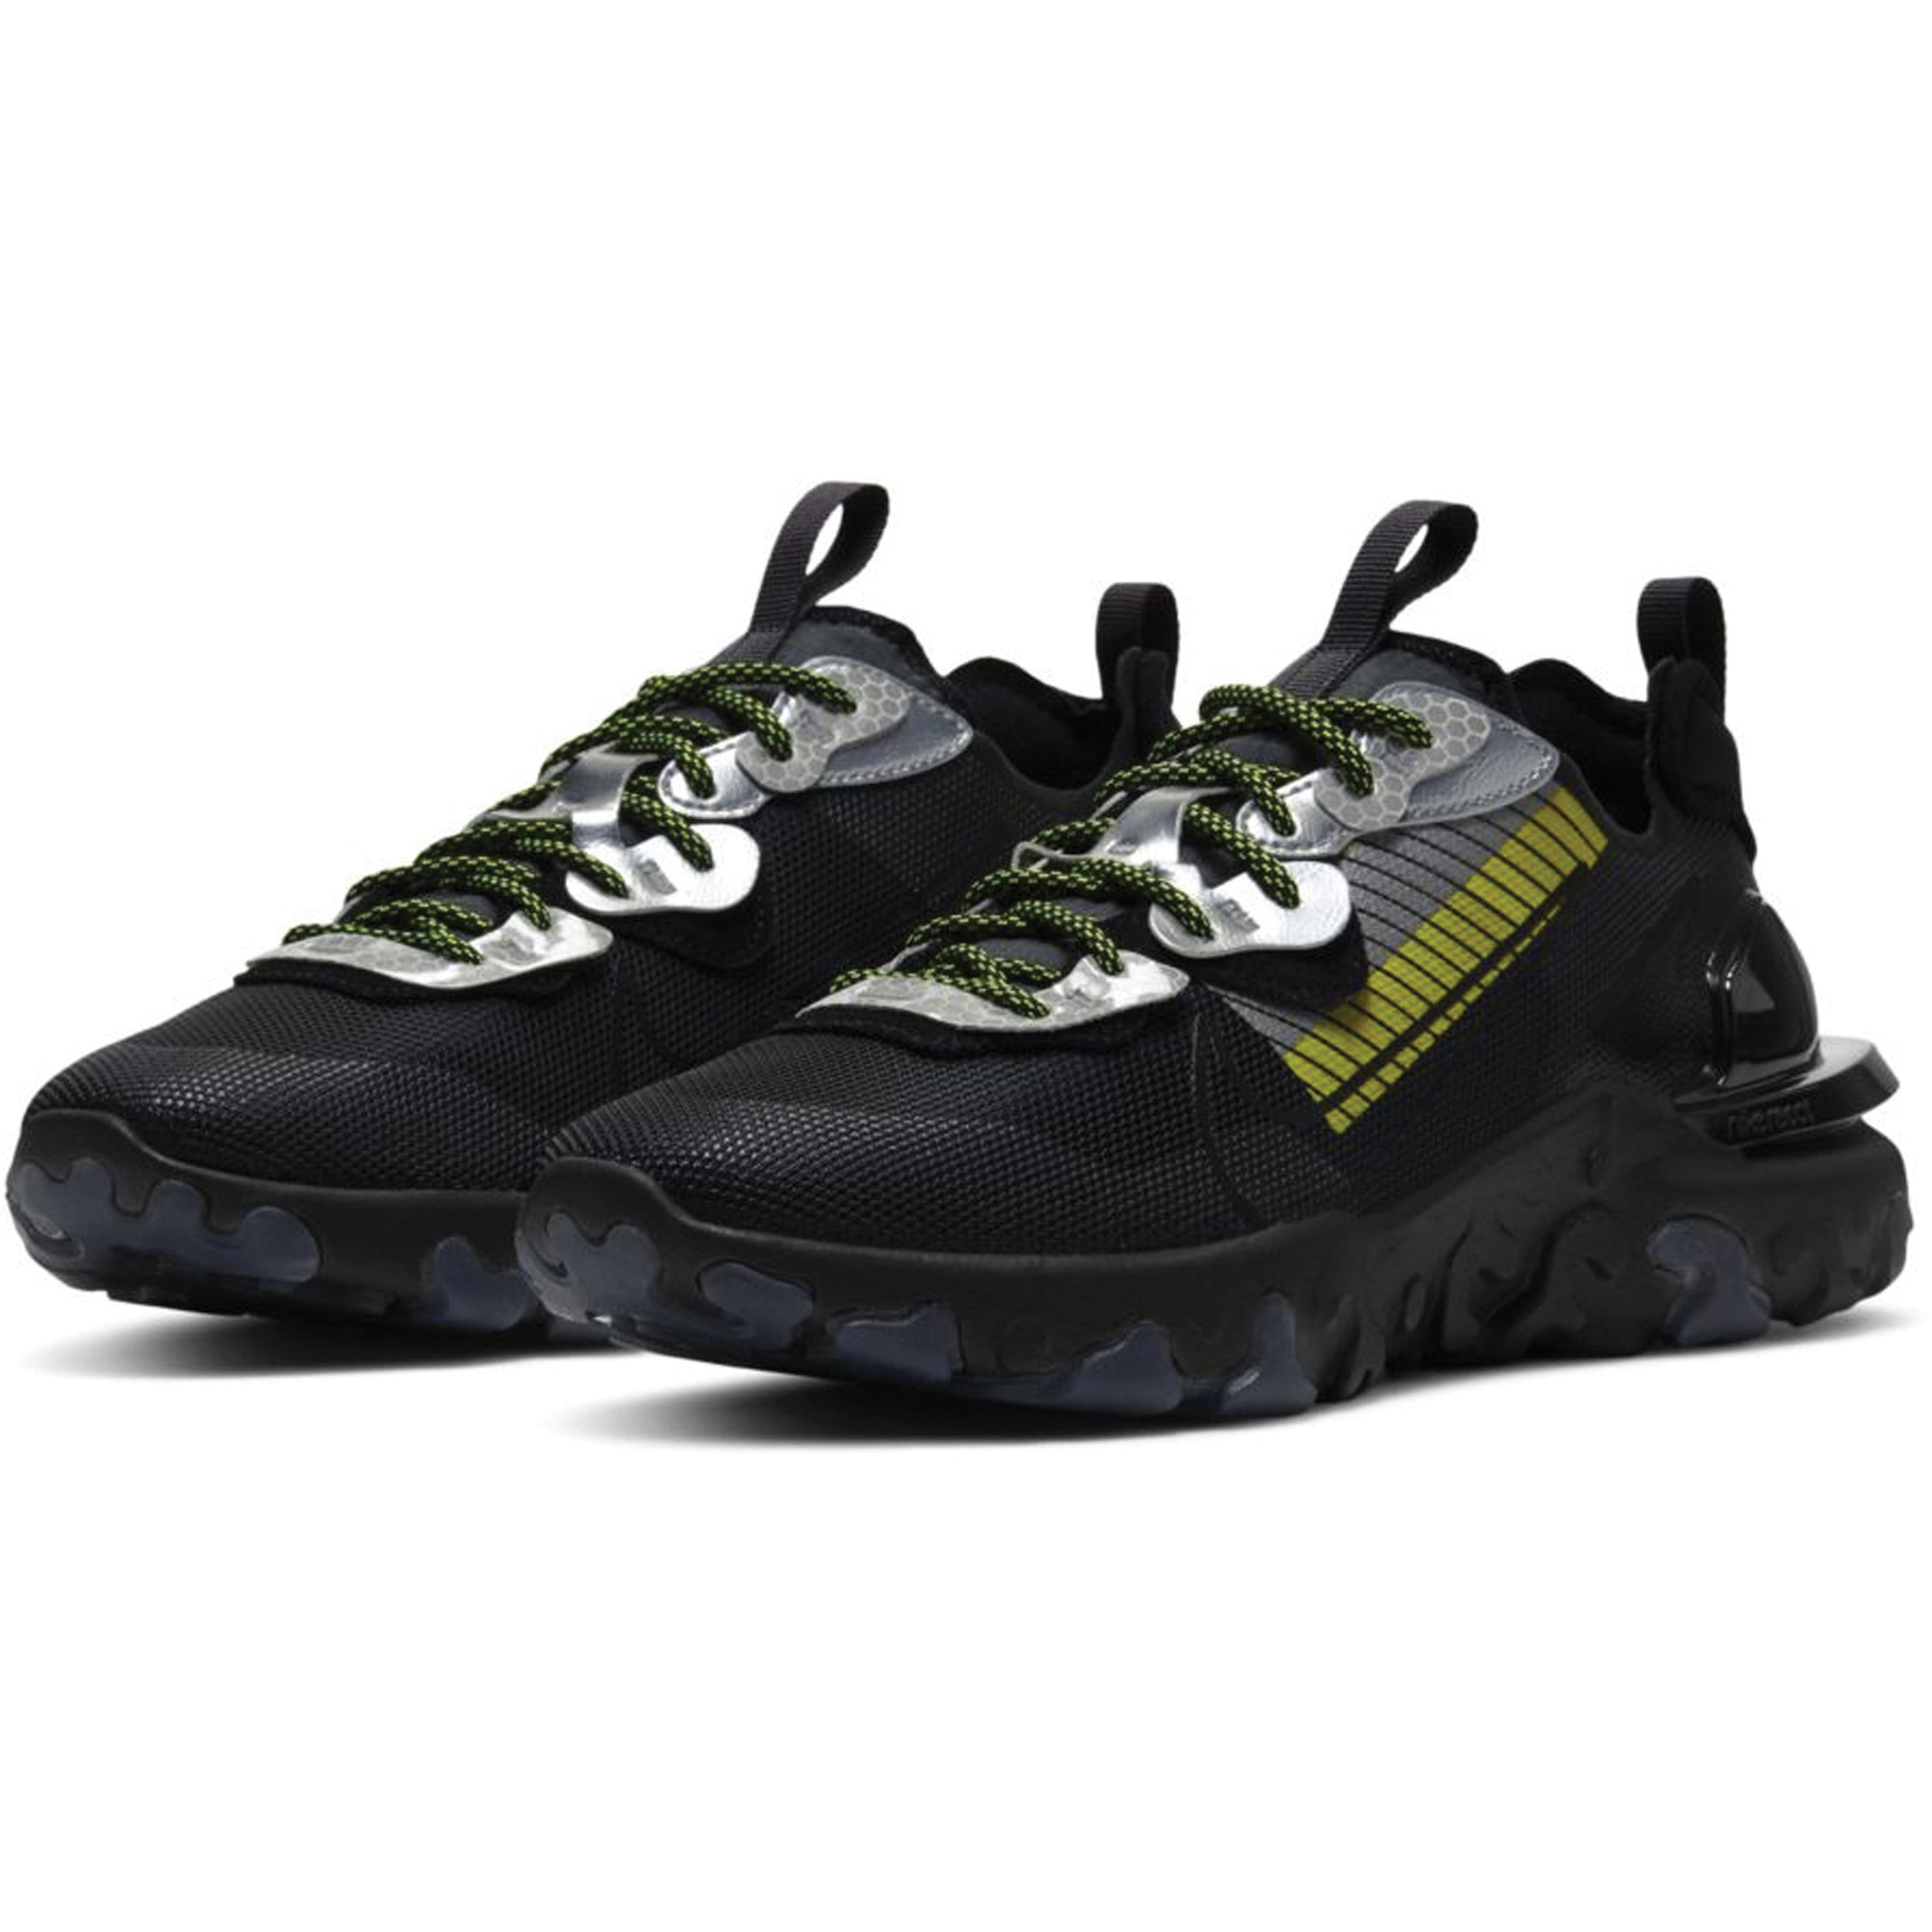 Nike React Vision X 3M - Homme Chaussures CU1463-001 43 pas cher